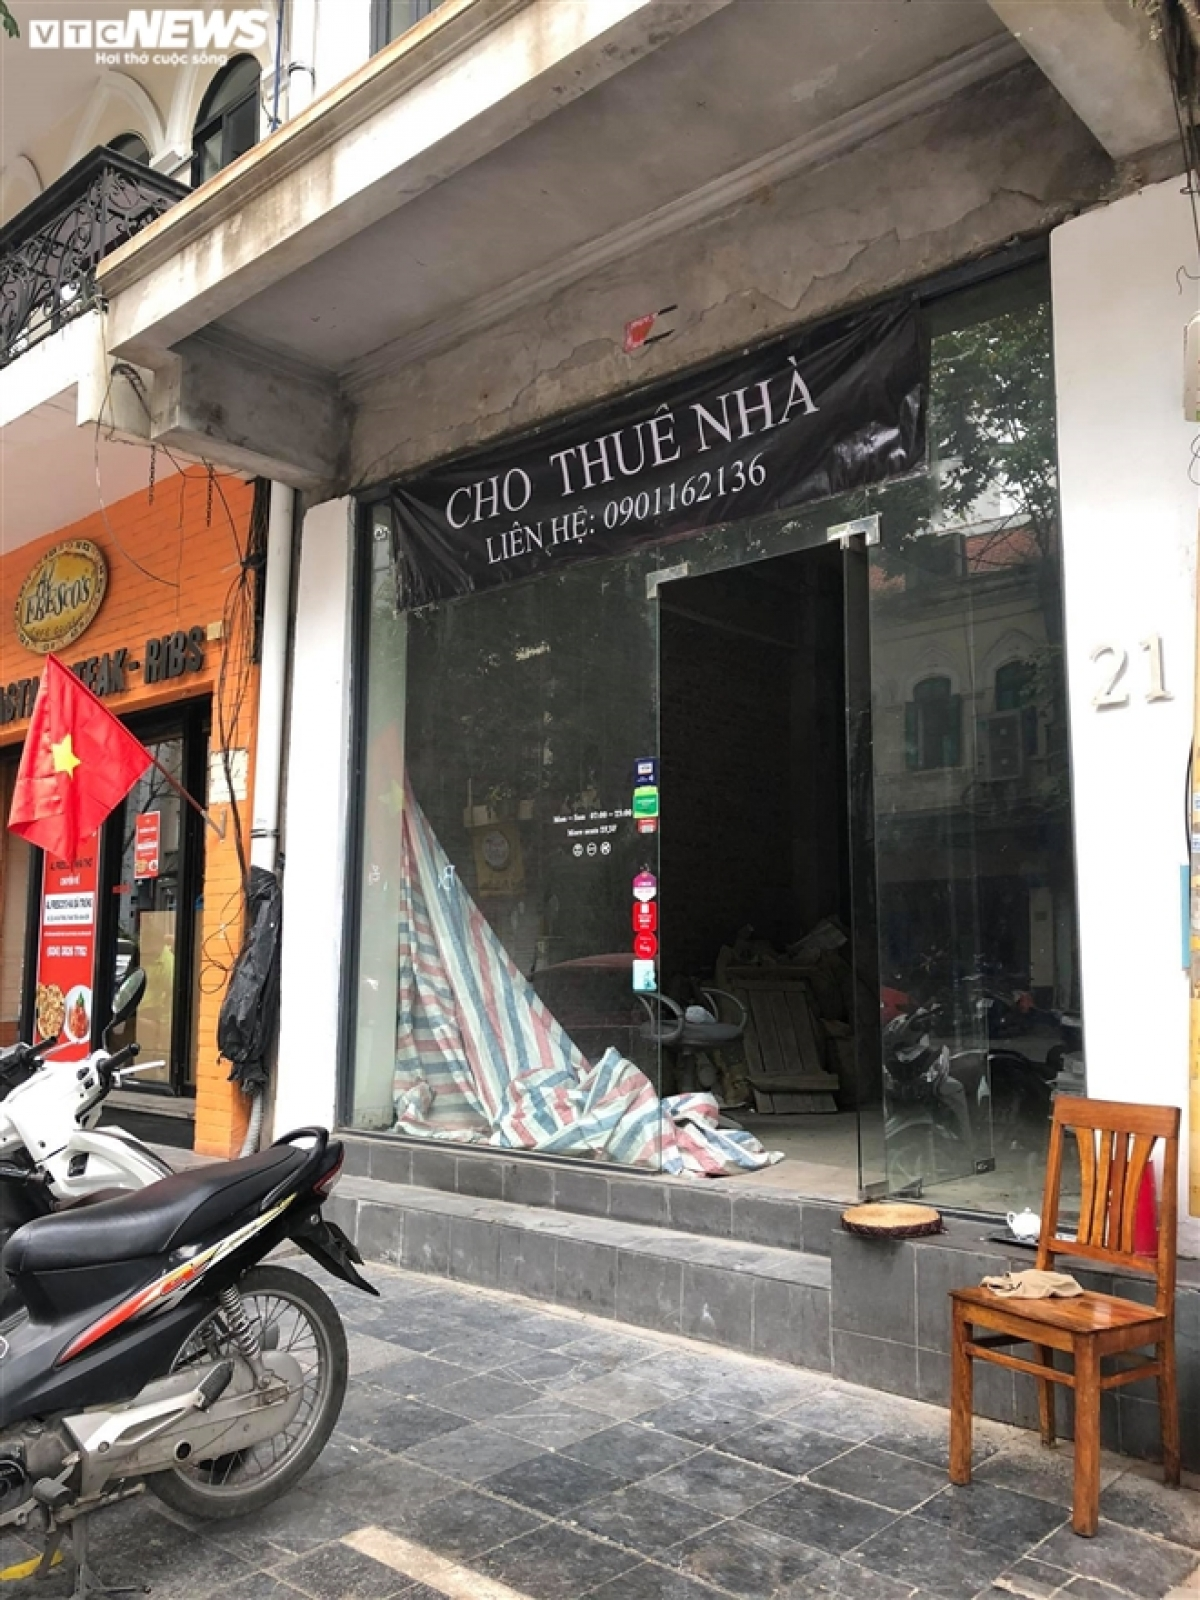 The impact of the COVID-19 pandemic forces a famous restaurant on Nha Tho street to close.